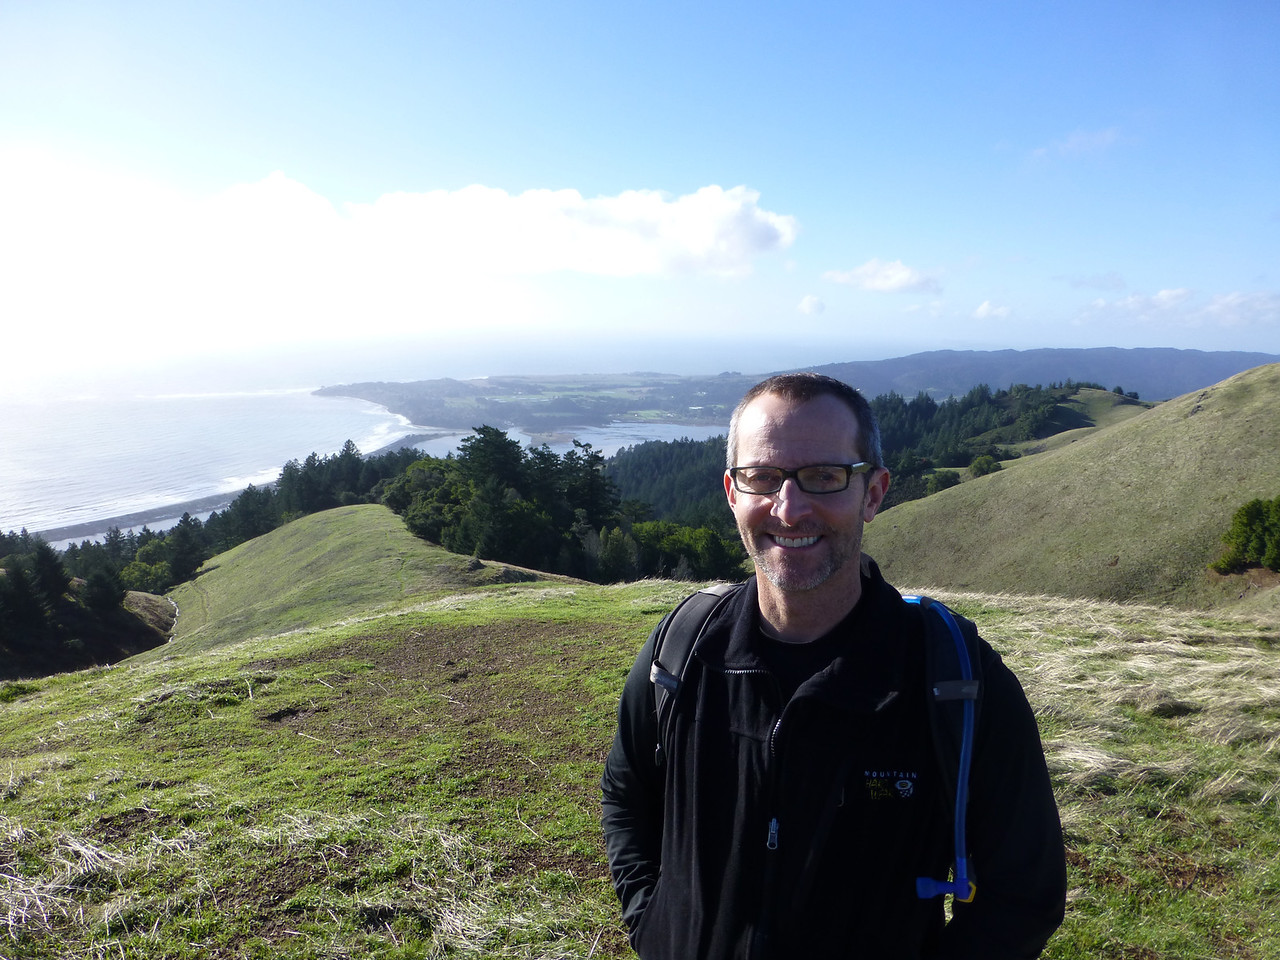 Nicolas Smith near the summit of Mt Tamalpais.  The man that introduced me and Rob.  Organizer of the coolest, best gay backcountry adventures you can possibly imagine.  PHENOMENAL professional photographer!